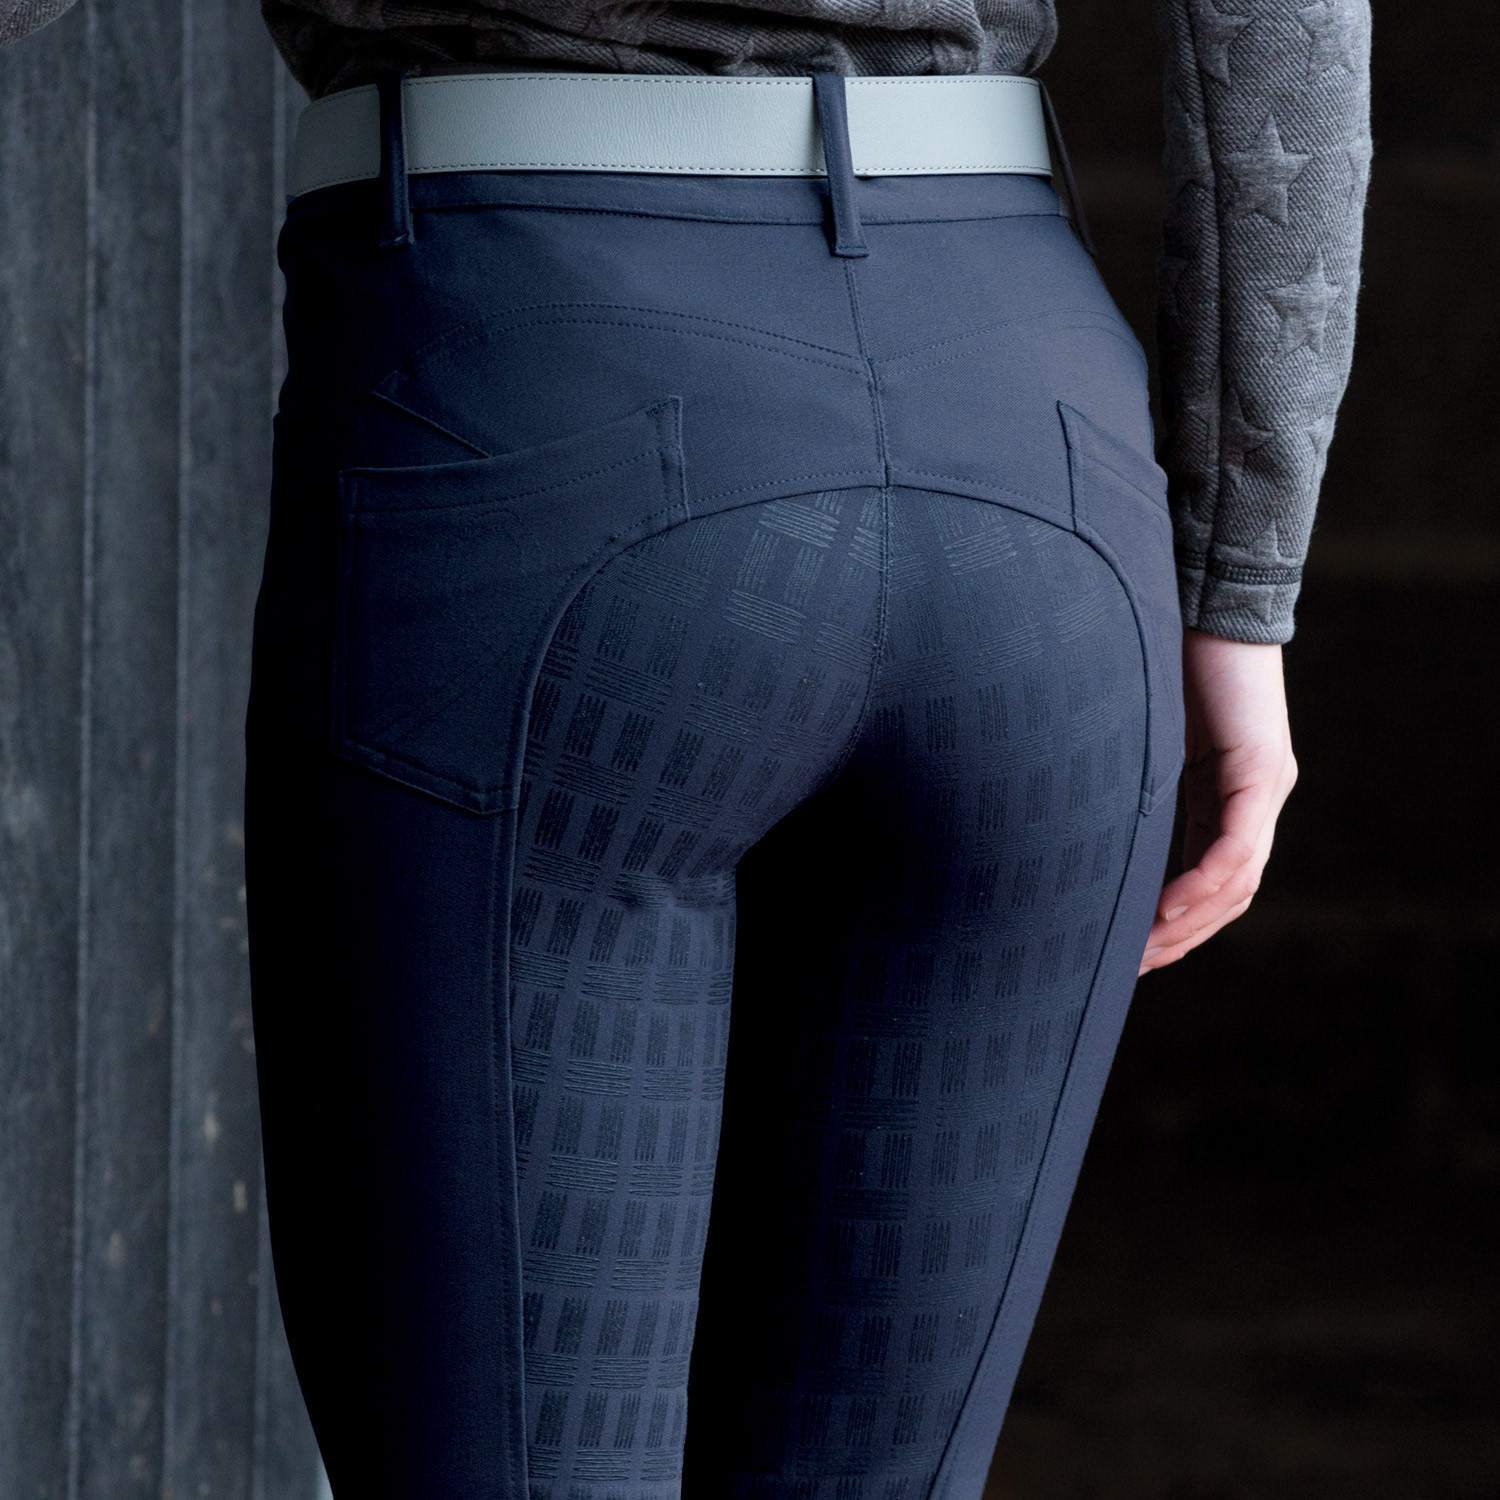 Expensive breeches don't make us better riders!